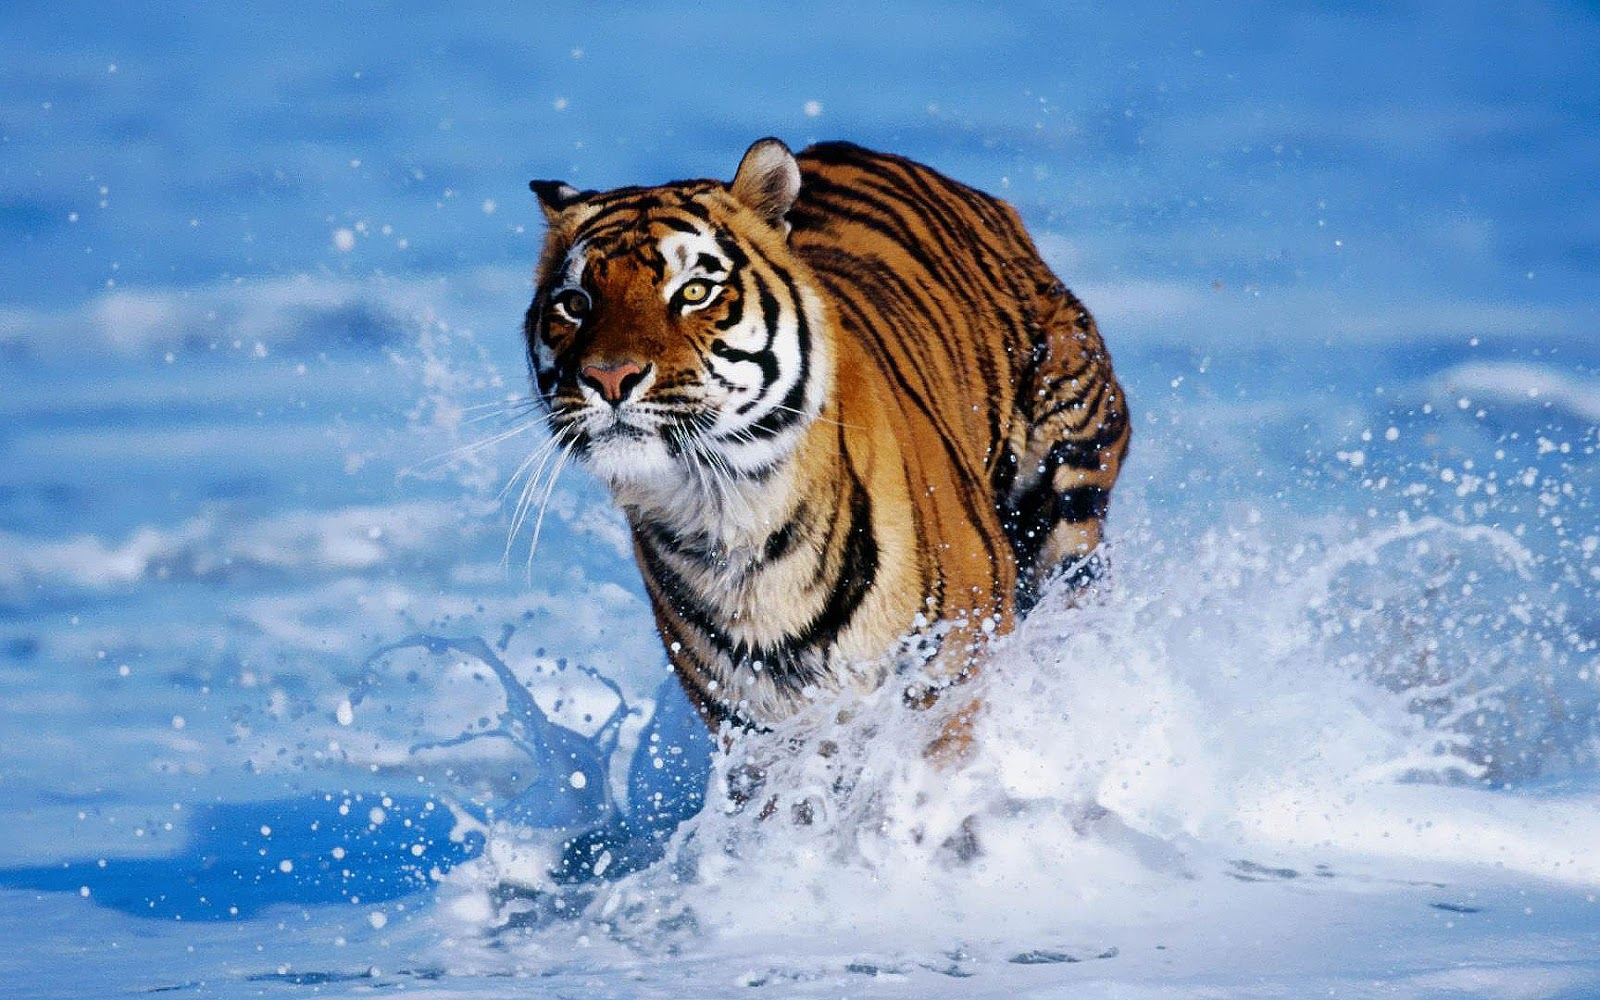 tiger running on water image hd wallpaper | wallpaperlepi